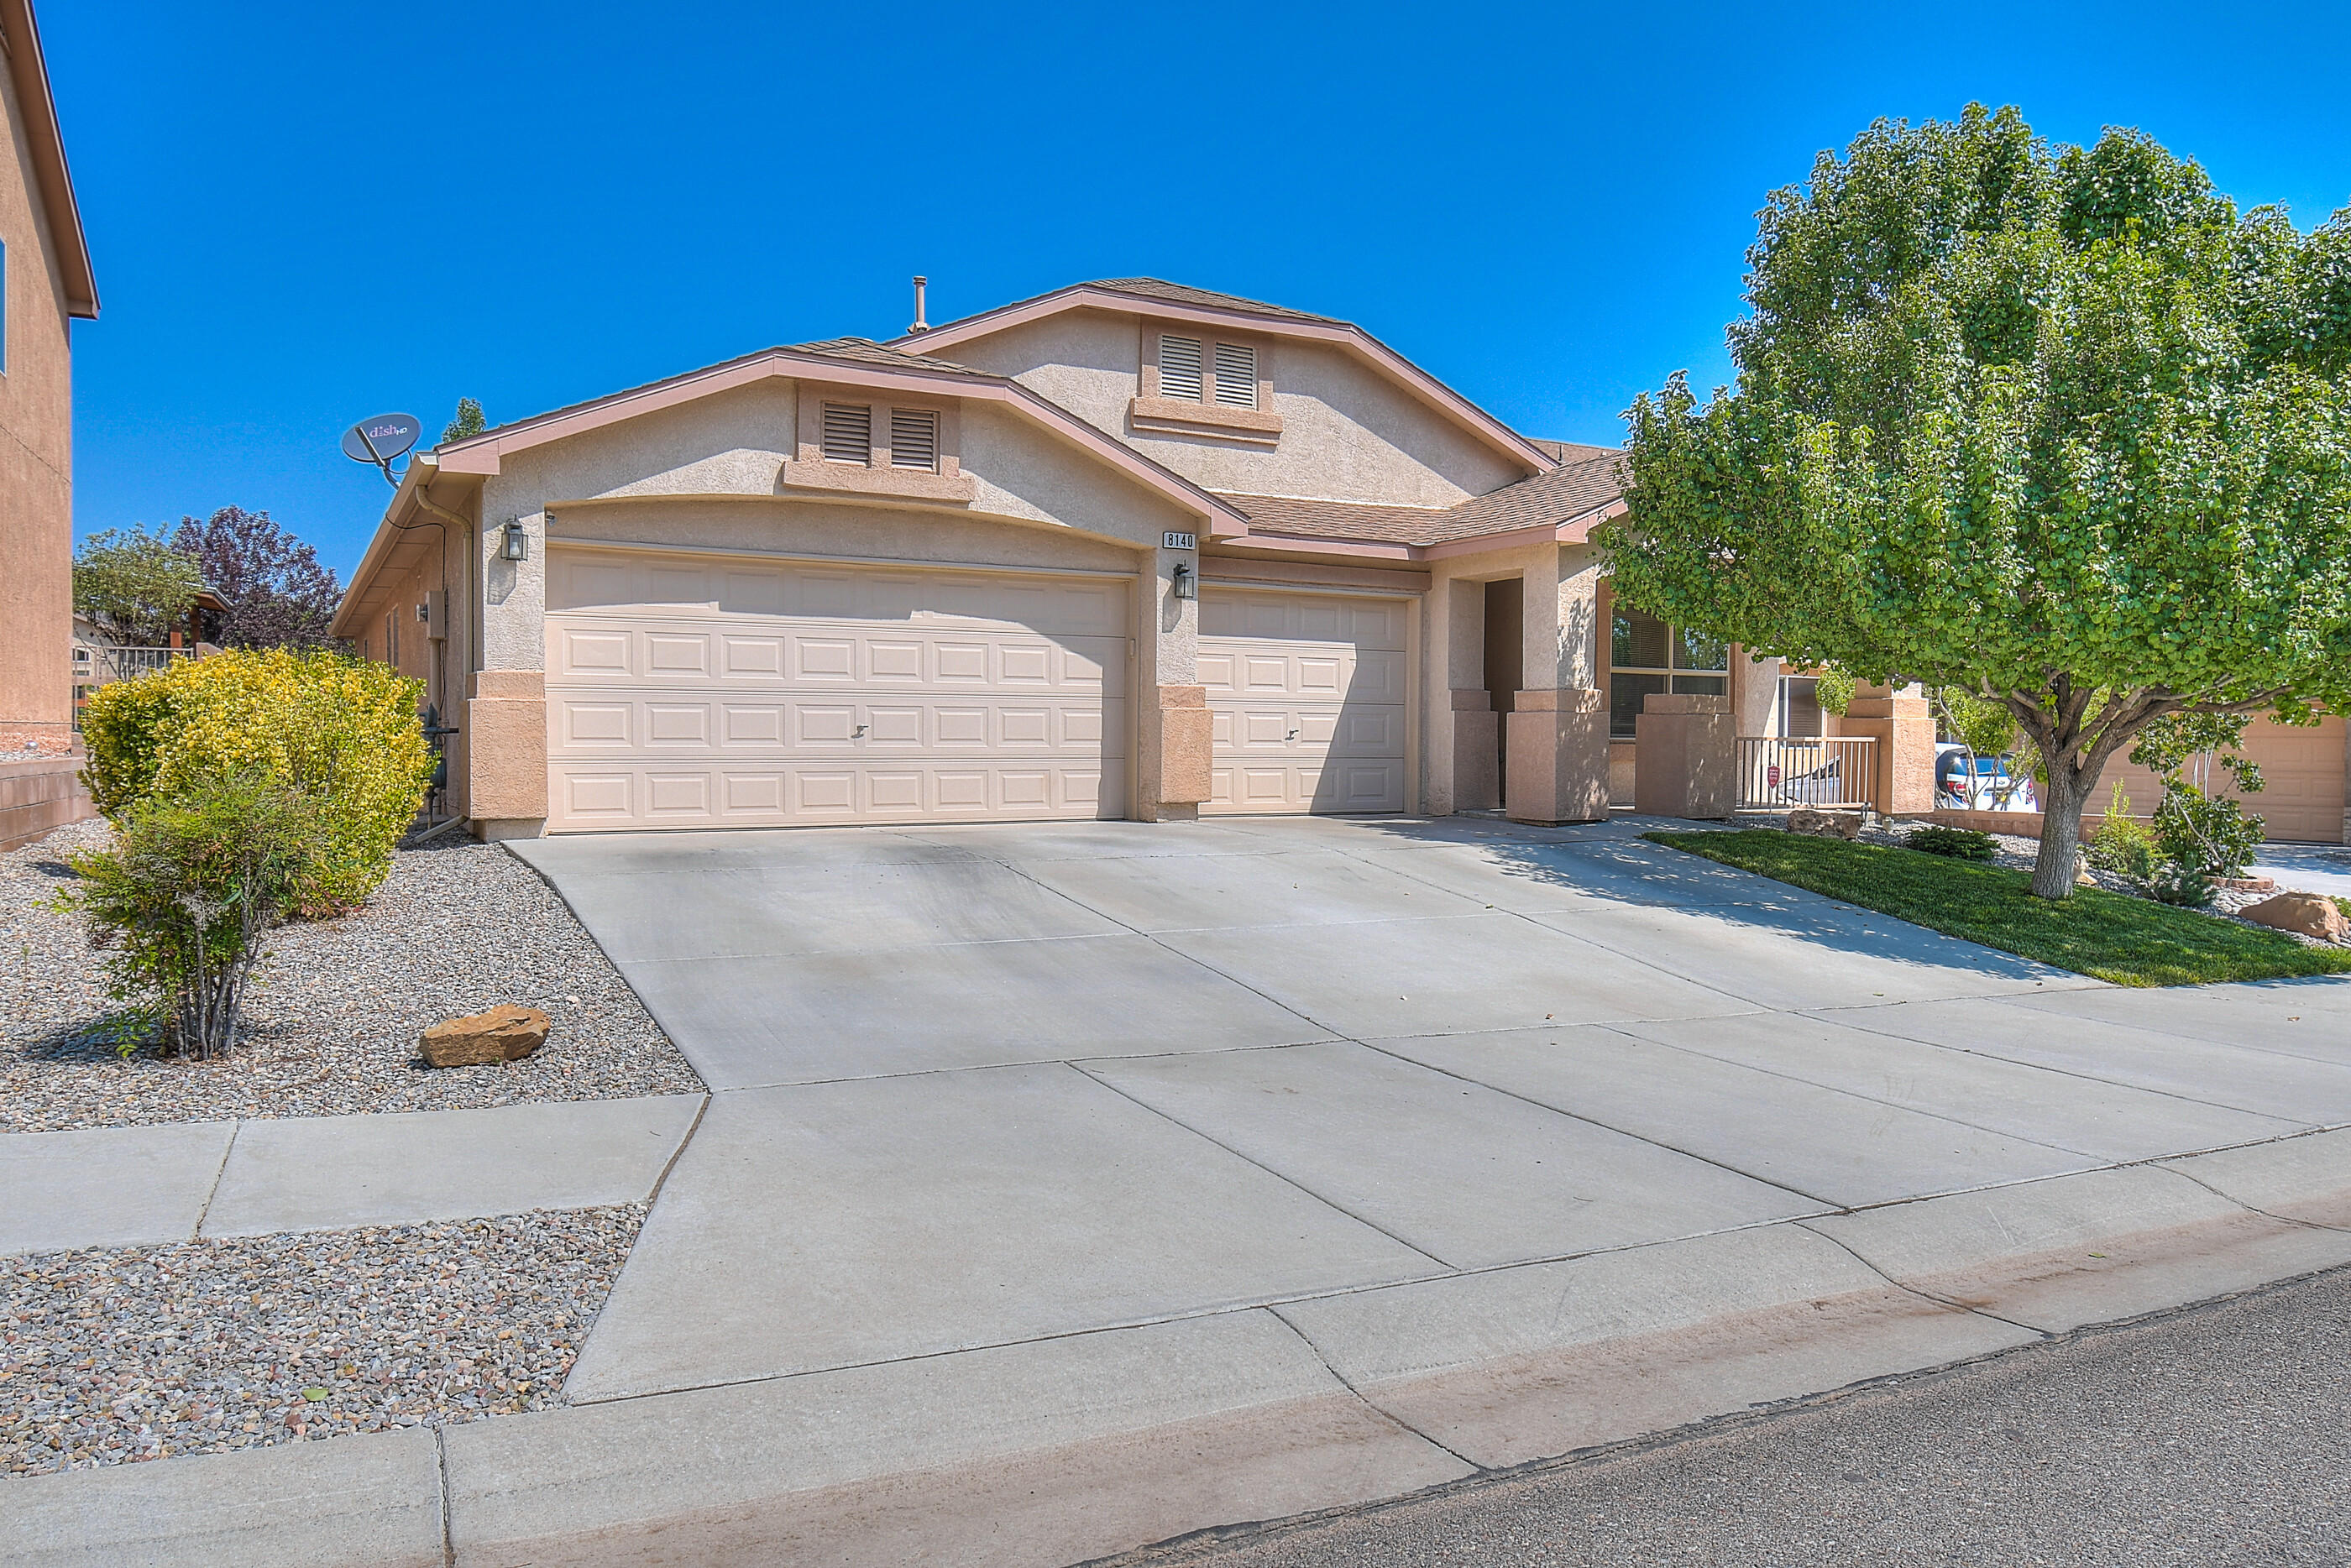 Welcome to this stunning home in Ventana Ranch! This home features 2,141 sq. ft, 3 bed/2bath, 2 Living rooms, & a 3-car garage! This well maintained home features tile and beautiful wood flooring throughout most of the home. The kitchen is a Chef's dream with a center island, solid surface countertops and backsplash, stainless steel appliances w/built-in oven & gas cooktop! The Pantry is oversized to fit all your extra kitchen gadgets!  The master suite has vaulted ceilings & lots of natural light. The master bath features a Jacuzzi tub, separate shower, double sinks & a walk-in closet. The Great Room features a gas fireplace and opens up to a backyard oasis with a covered patio, BBQ gas hookup, perfectly manicured landscaping, and lots of mature trees offering privacy and a storage unit.